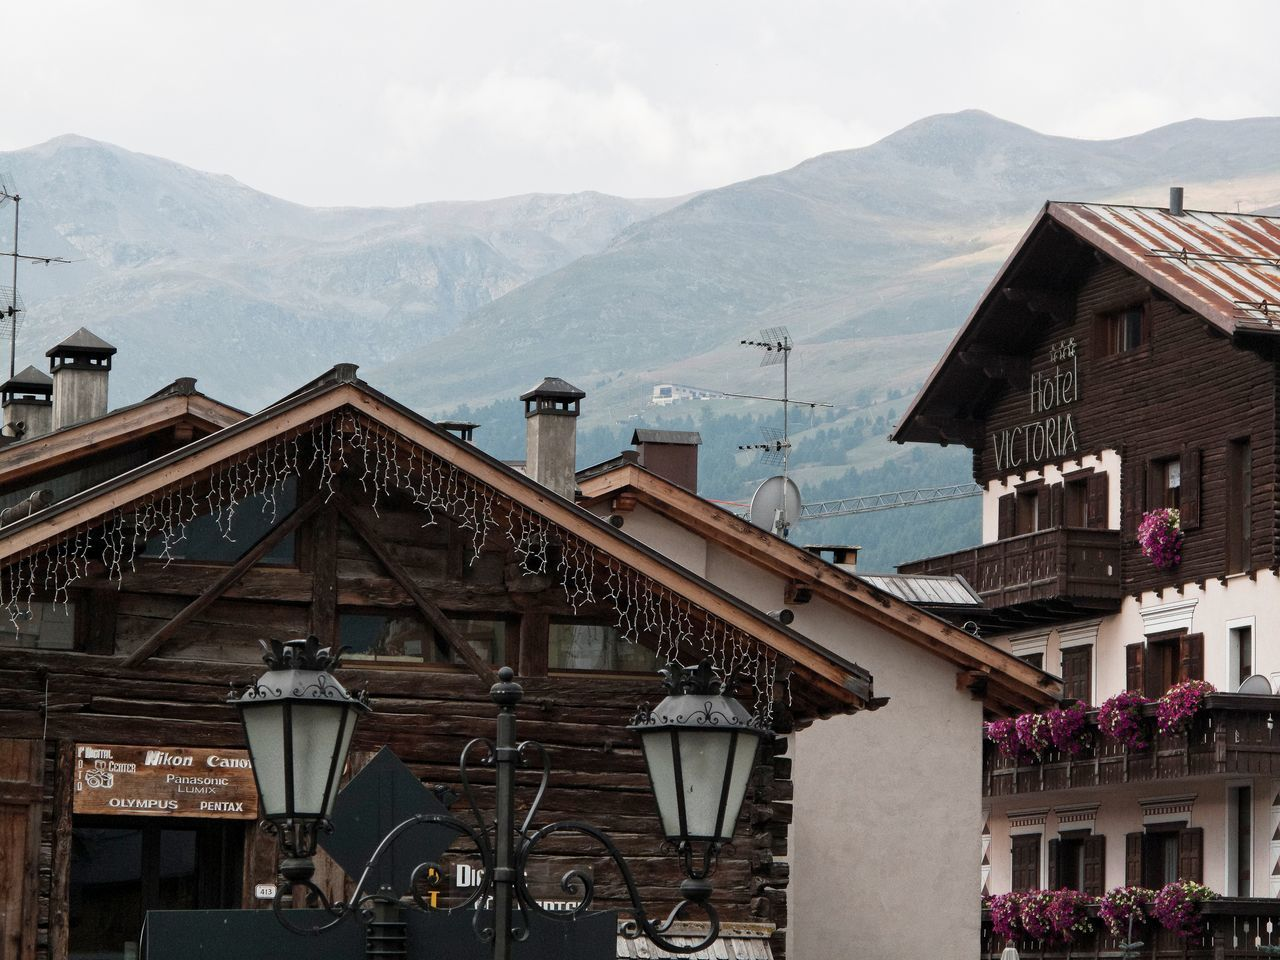 mountain, architecture, building exterior, built structure, house, day, mountain range, sky, outdoors, no people, town, residential building, roof, nature